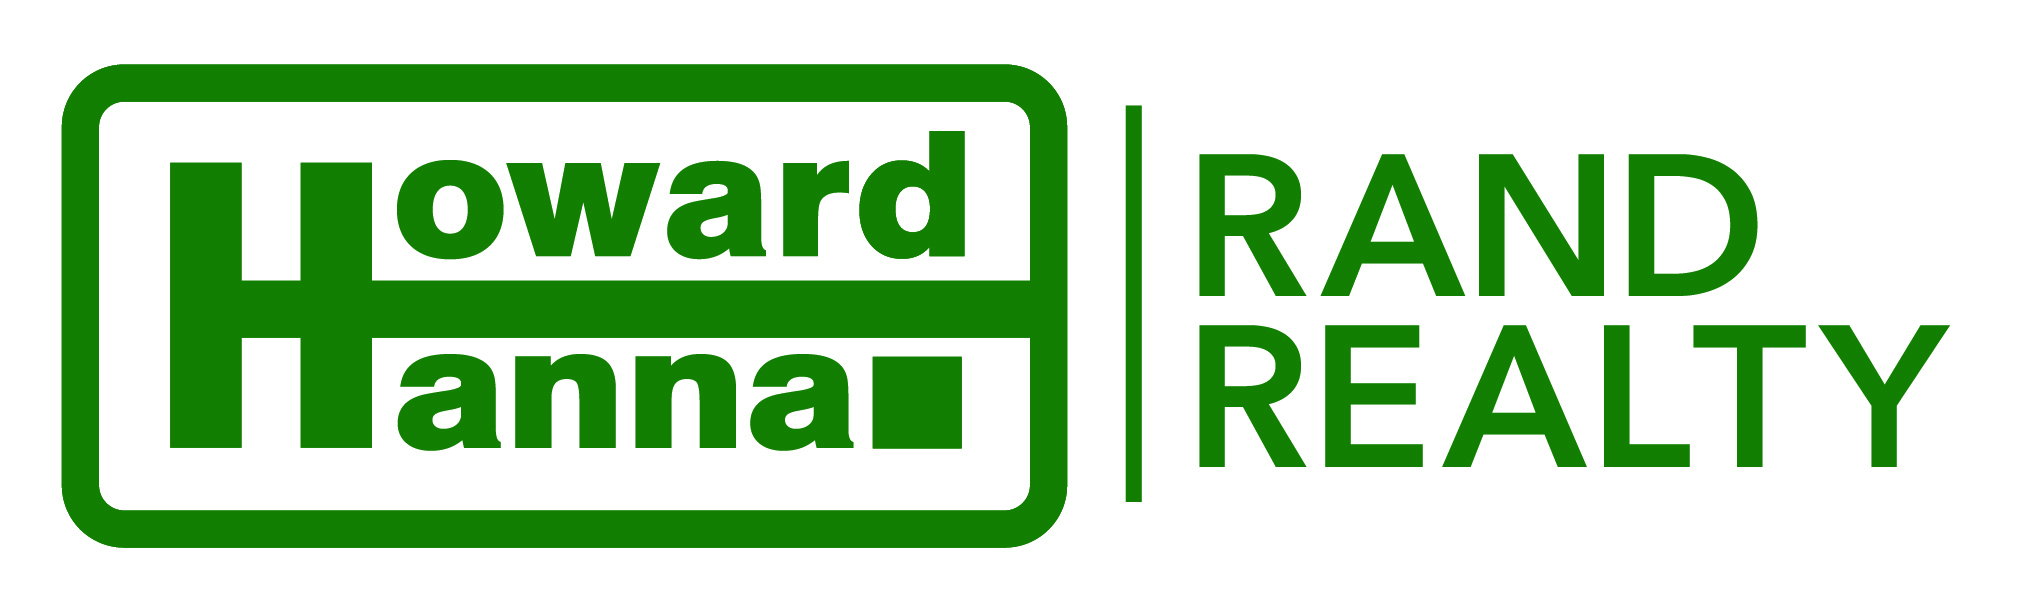 Howard Hanna Rand Realty